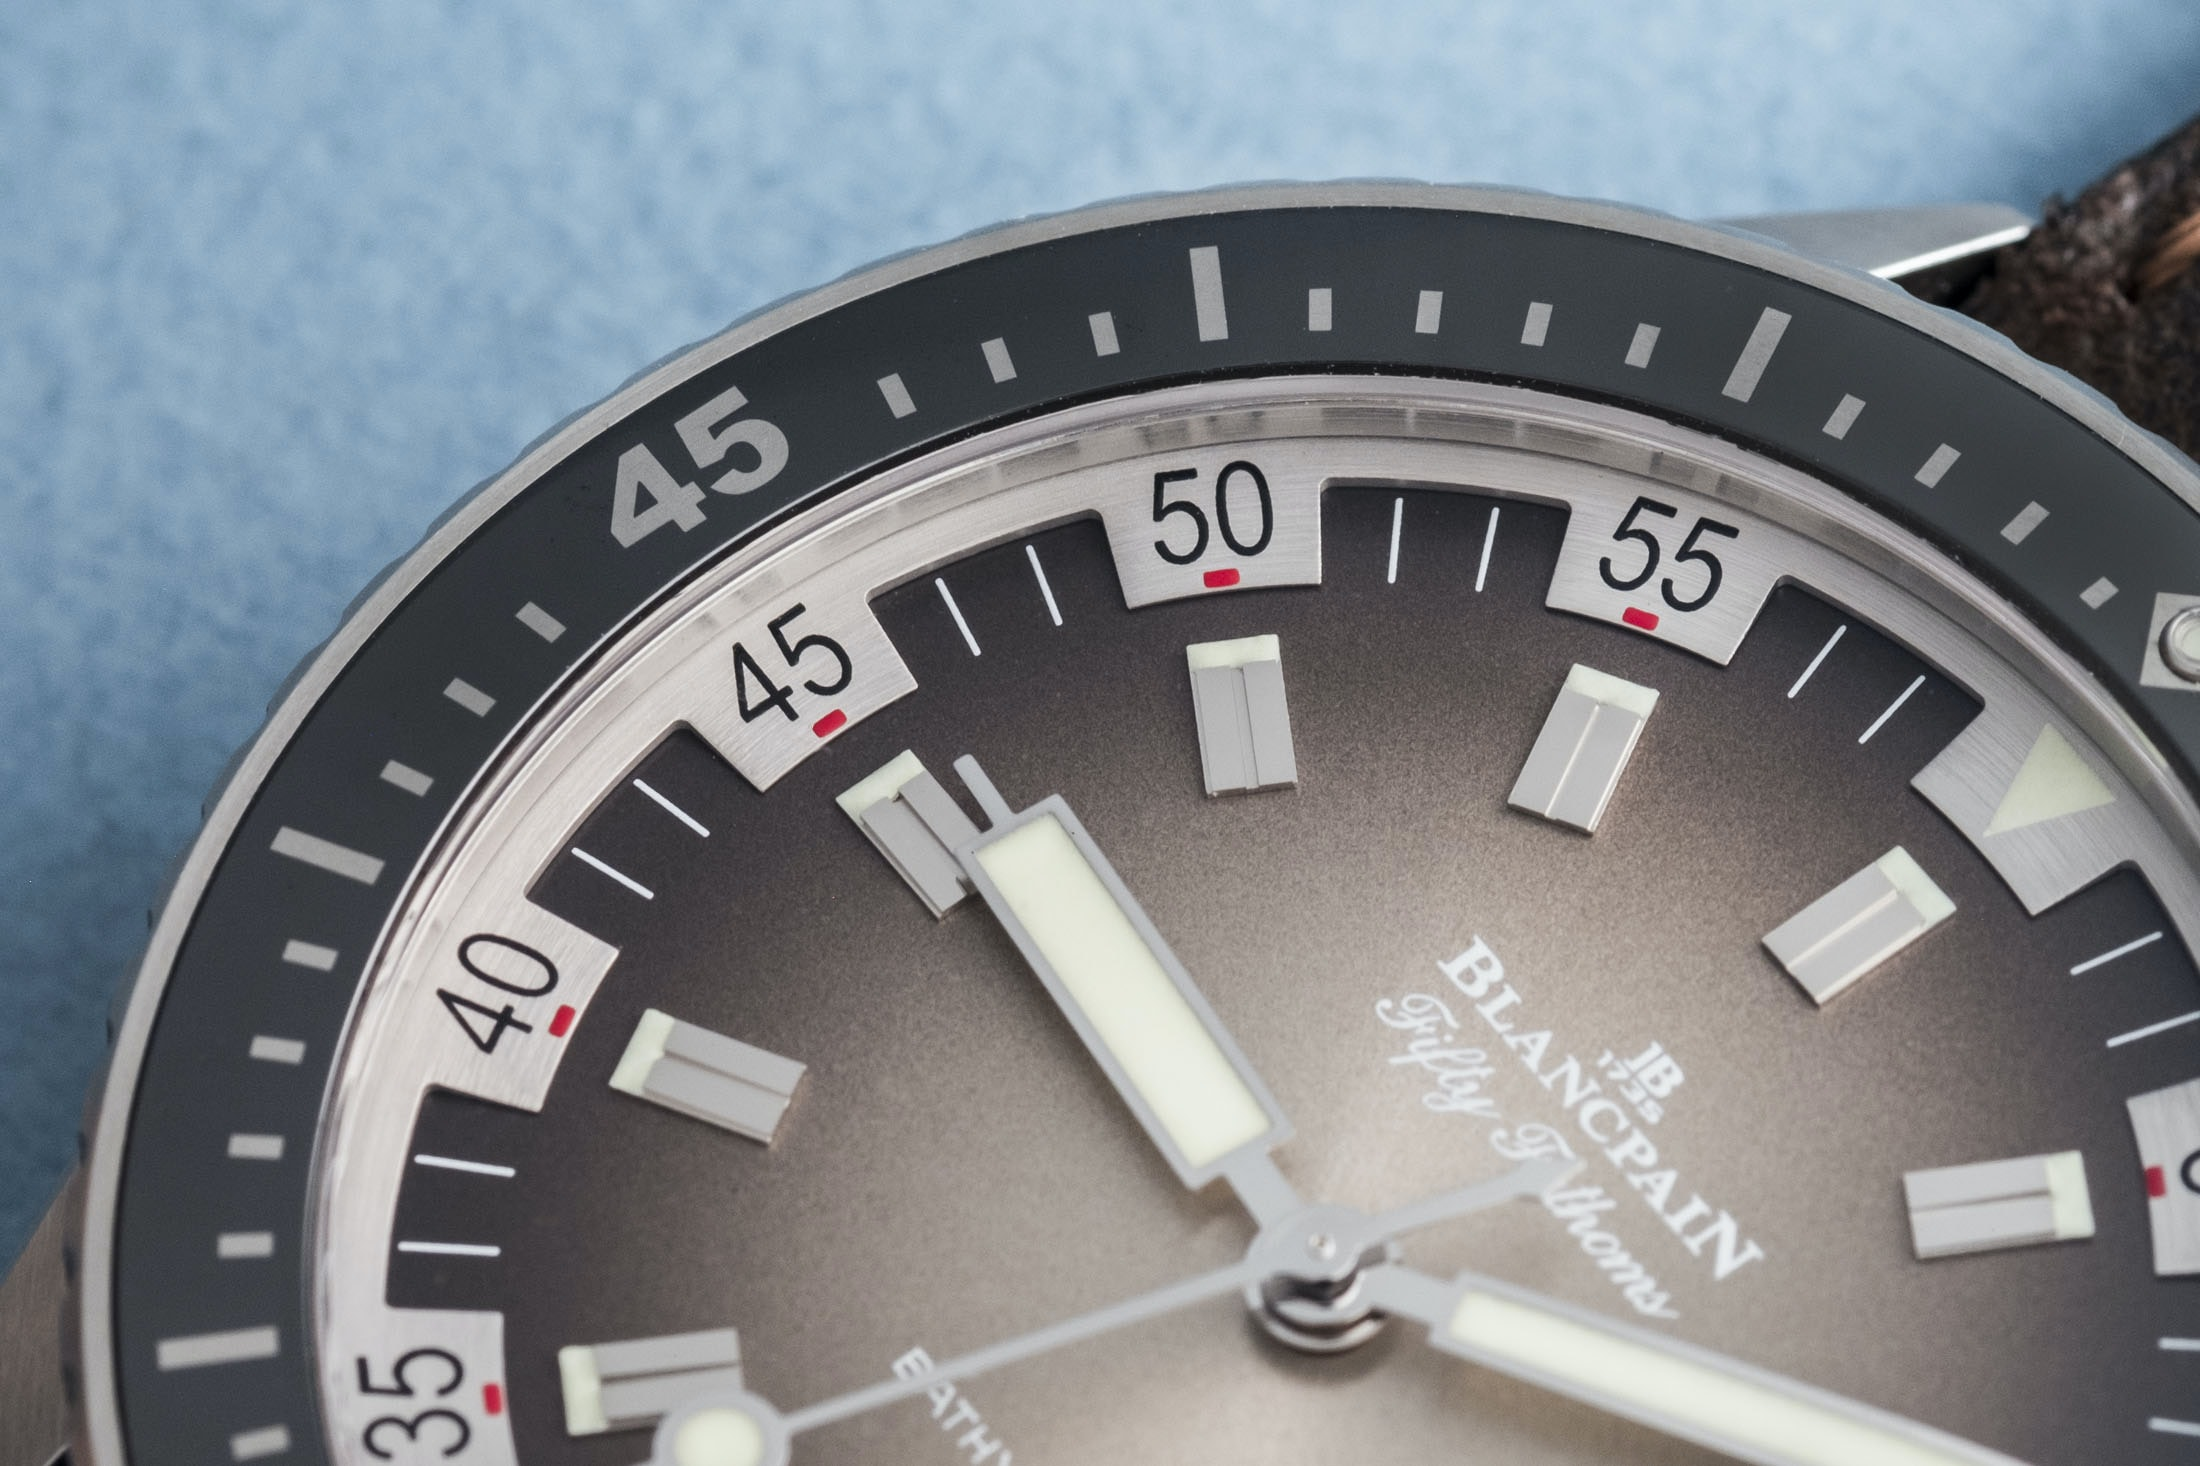 Review: The Blancpain Fifty Fathoms Bathyscaphe Day Date 70s DSCF8680